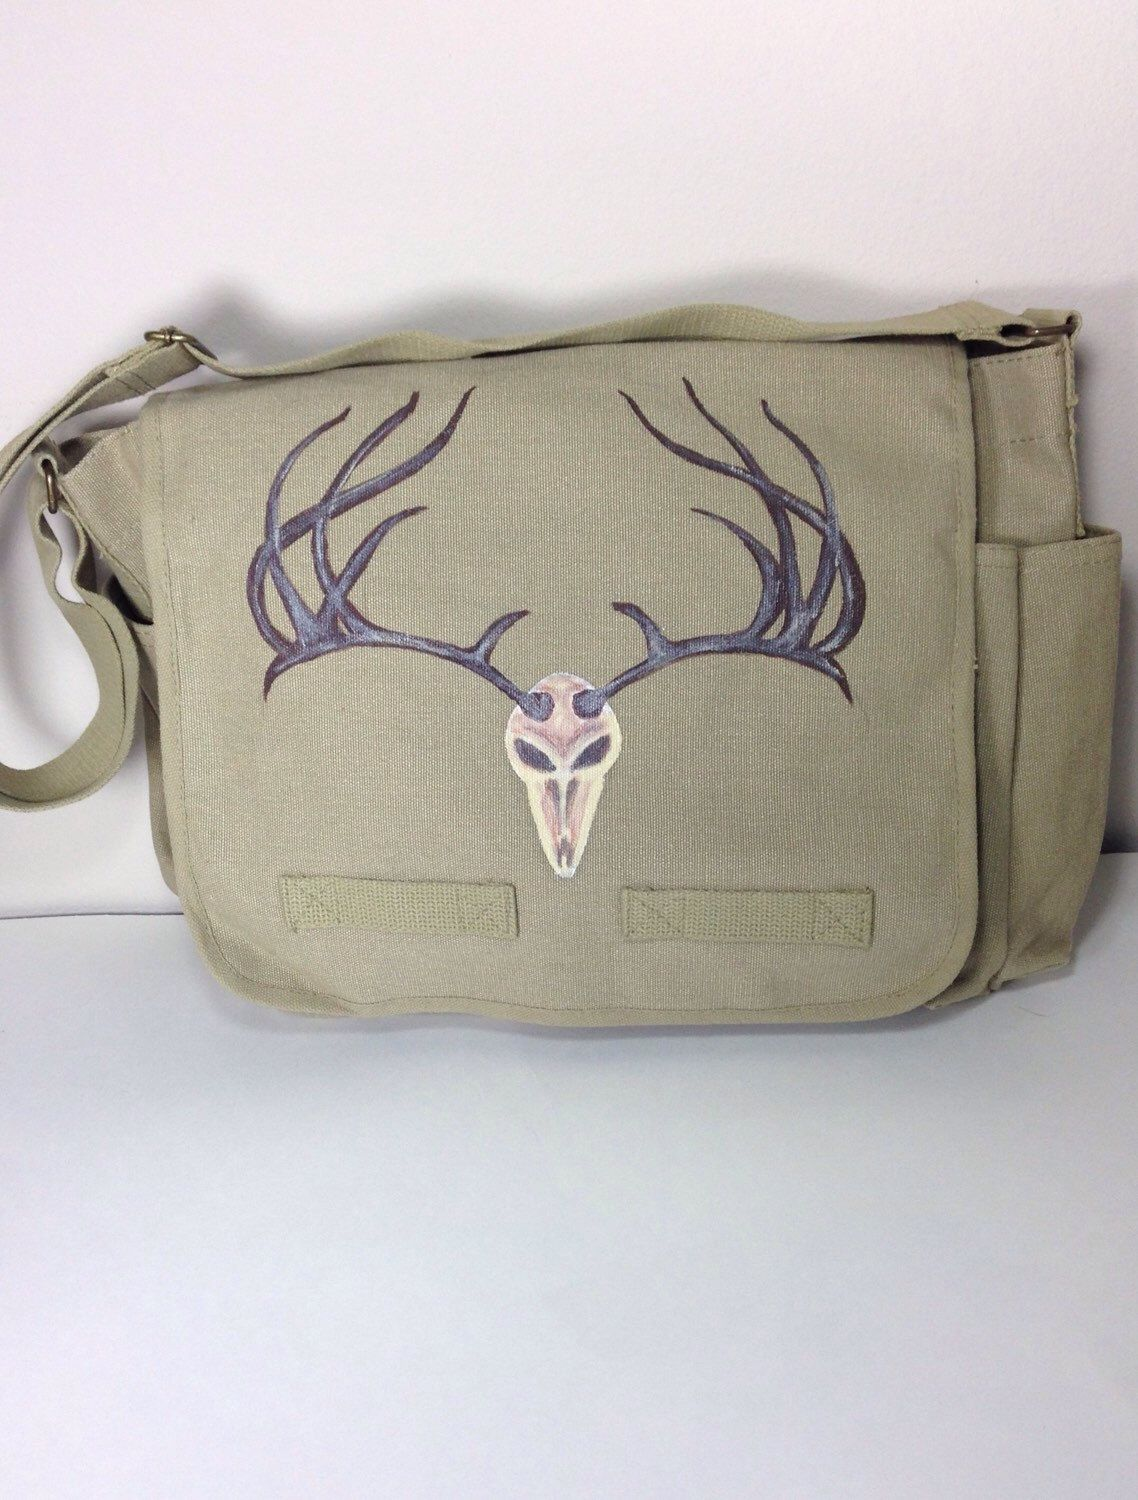 27fe46d04466 Everest Large Cotton Canvas Messenger Bag with Hand Painted Deer Horns